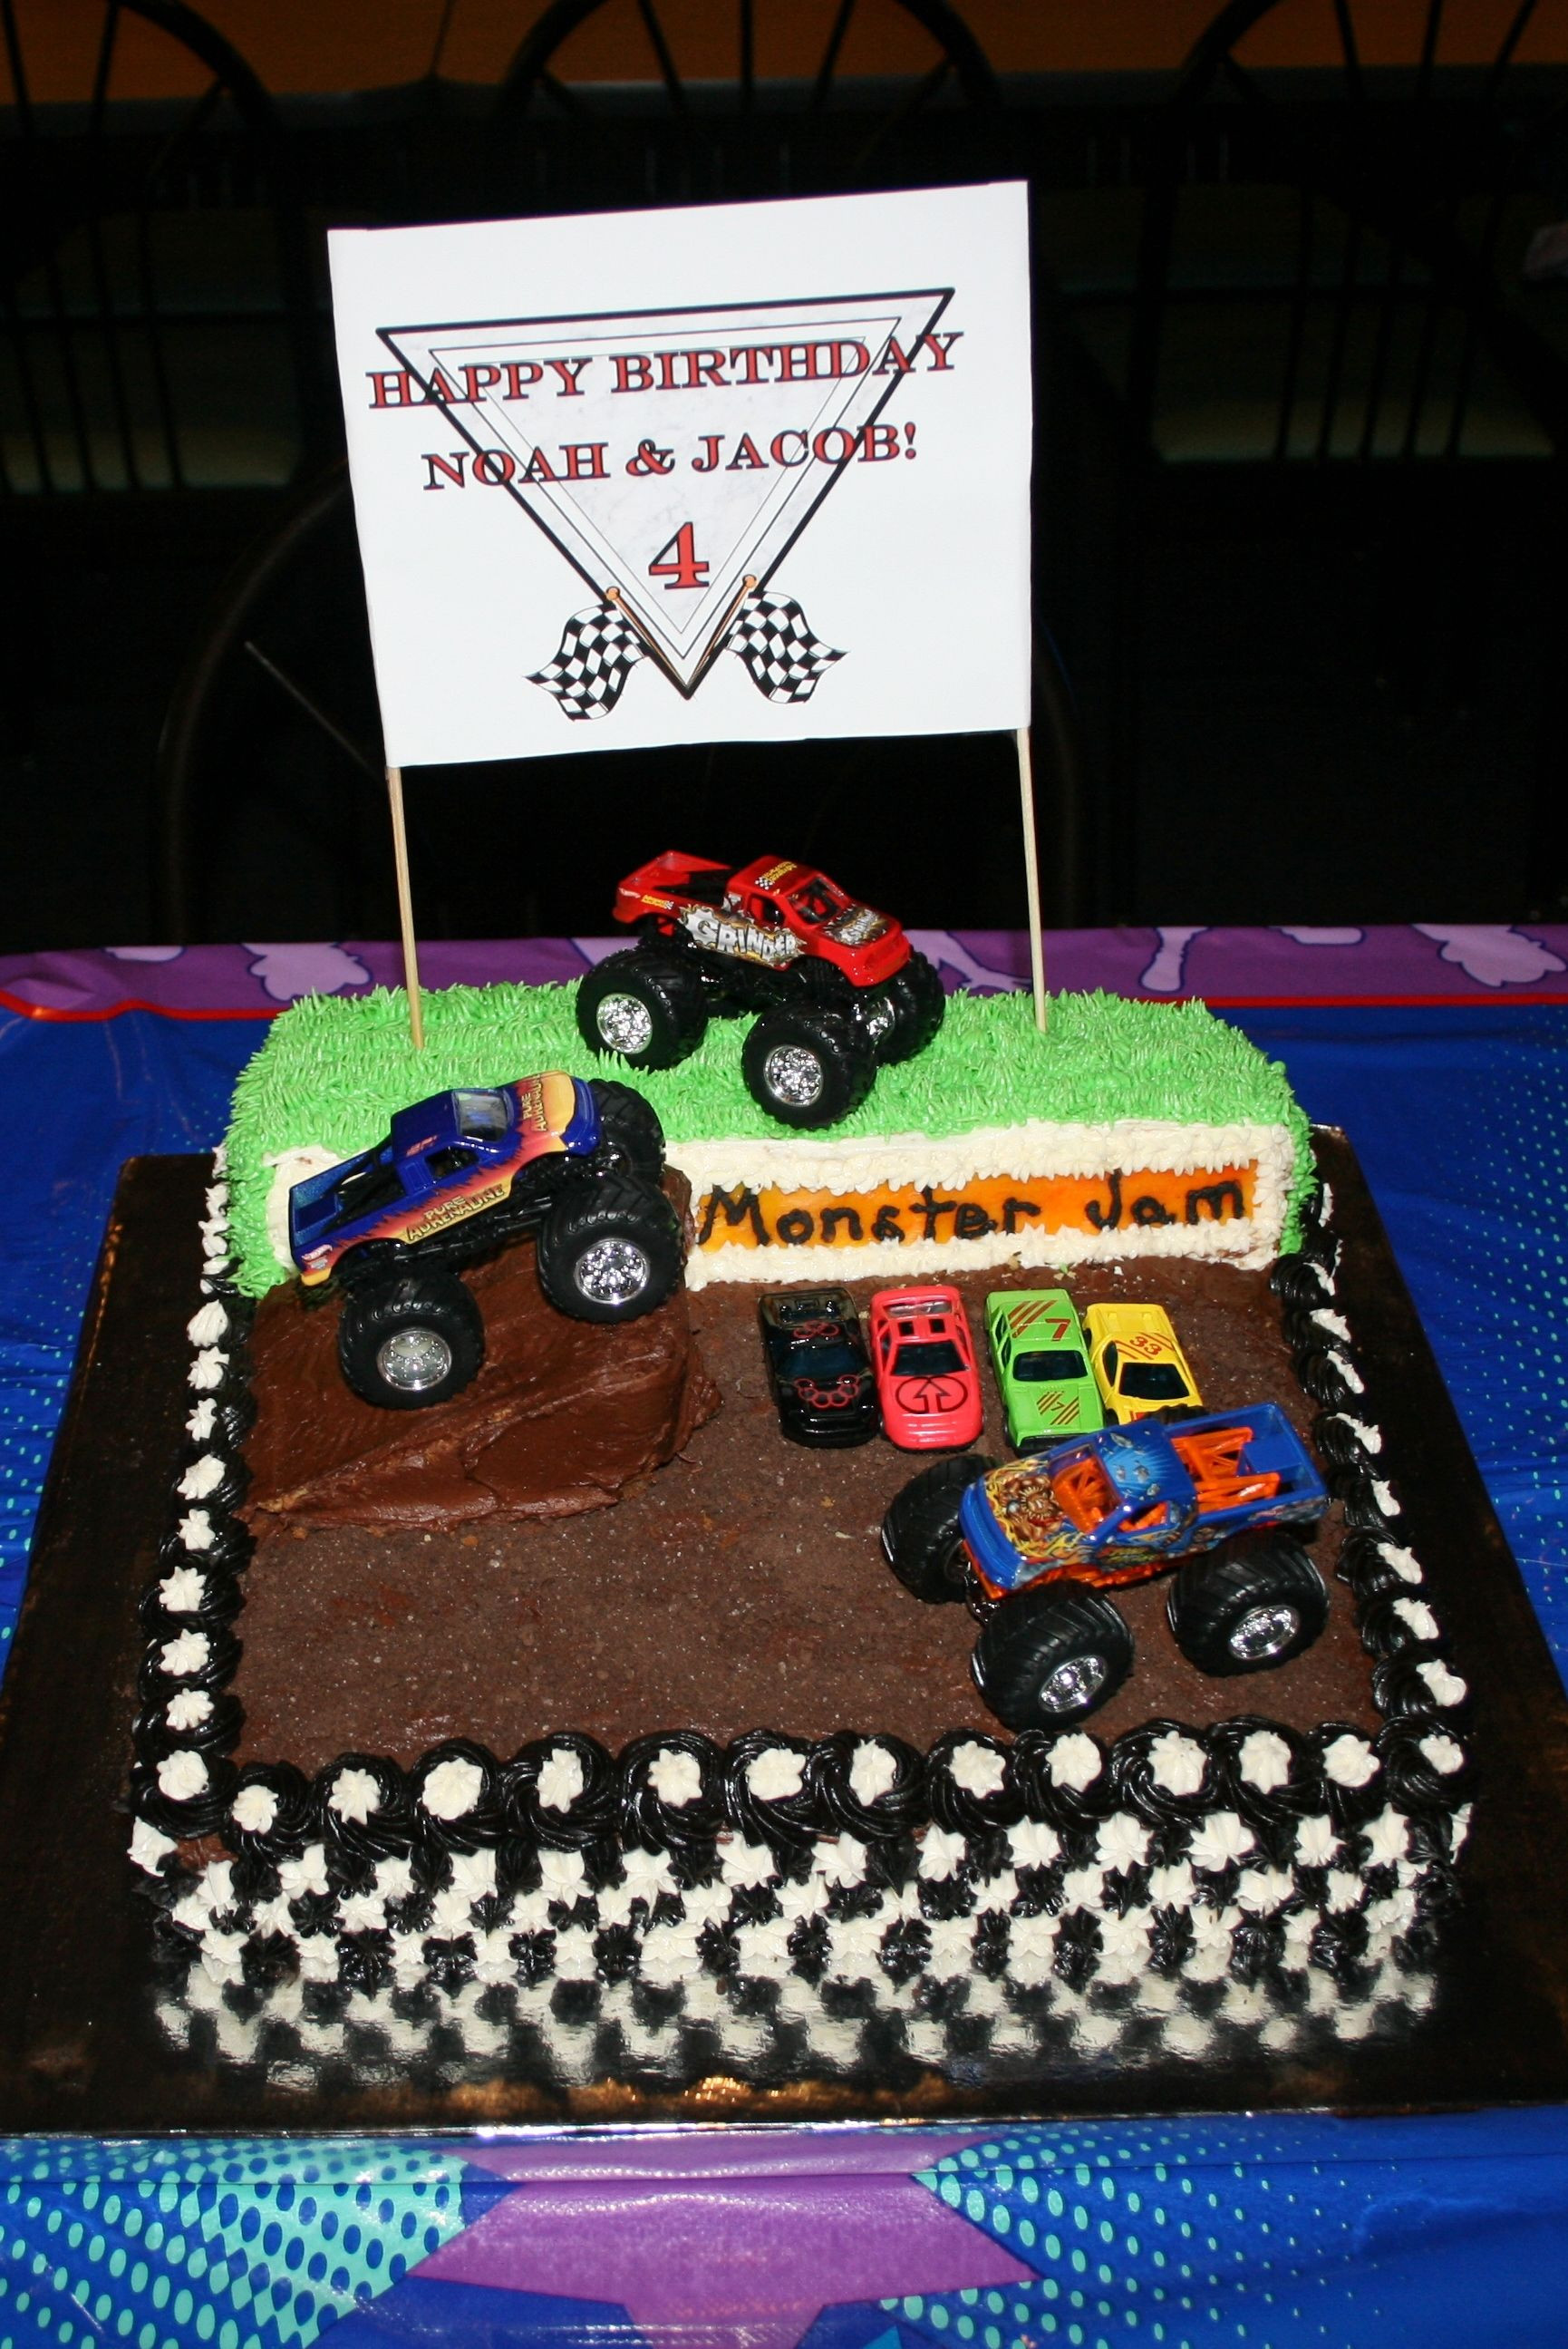 Best ideas about Monster Truck Birthday Cake . Save or Pin Monster Truck Birthday Cake Mini Cakes by Lisa Now.